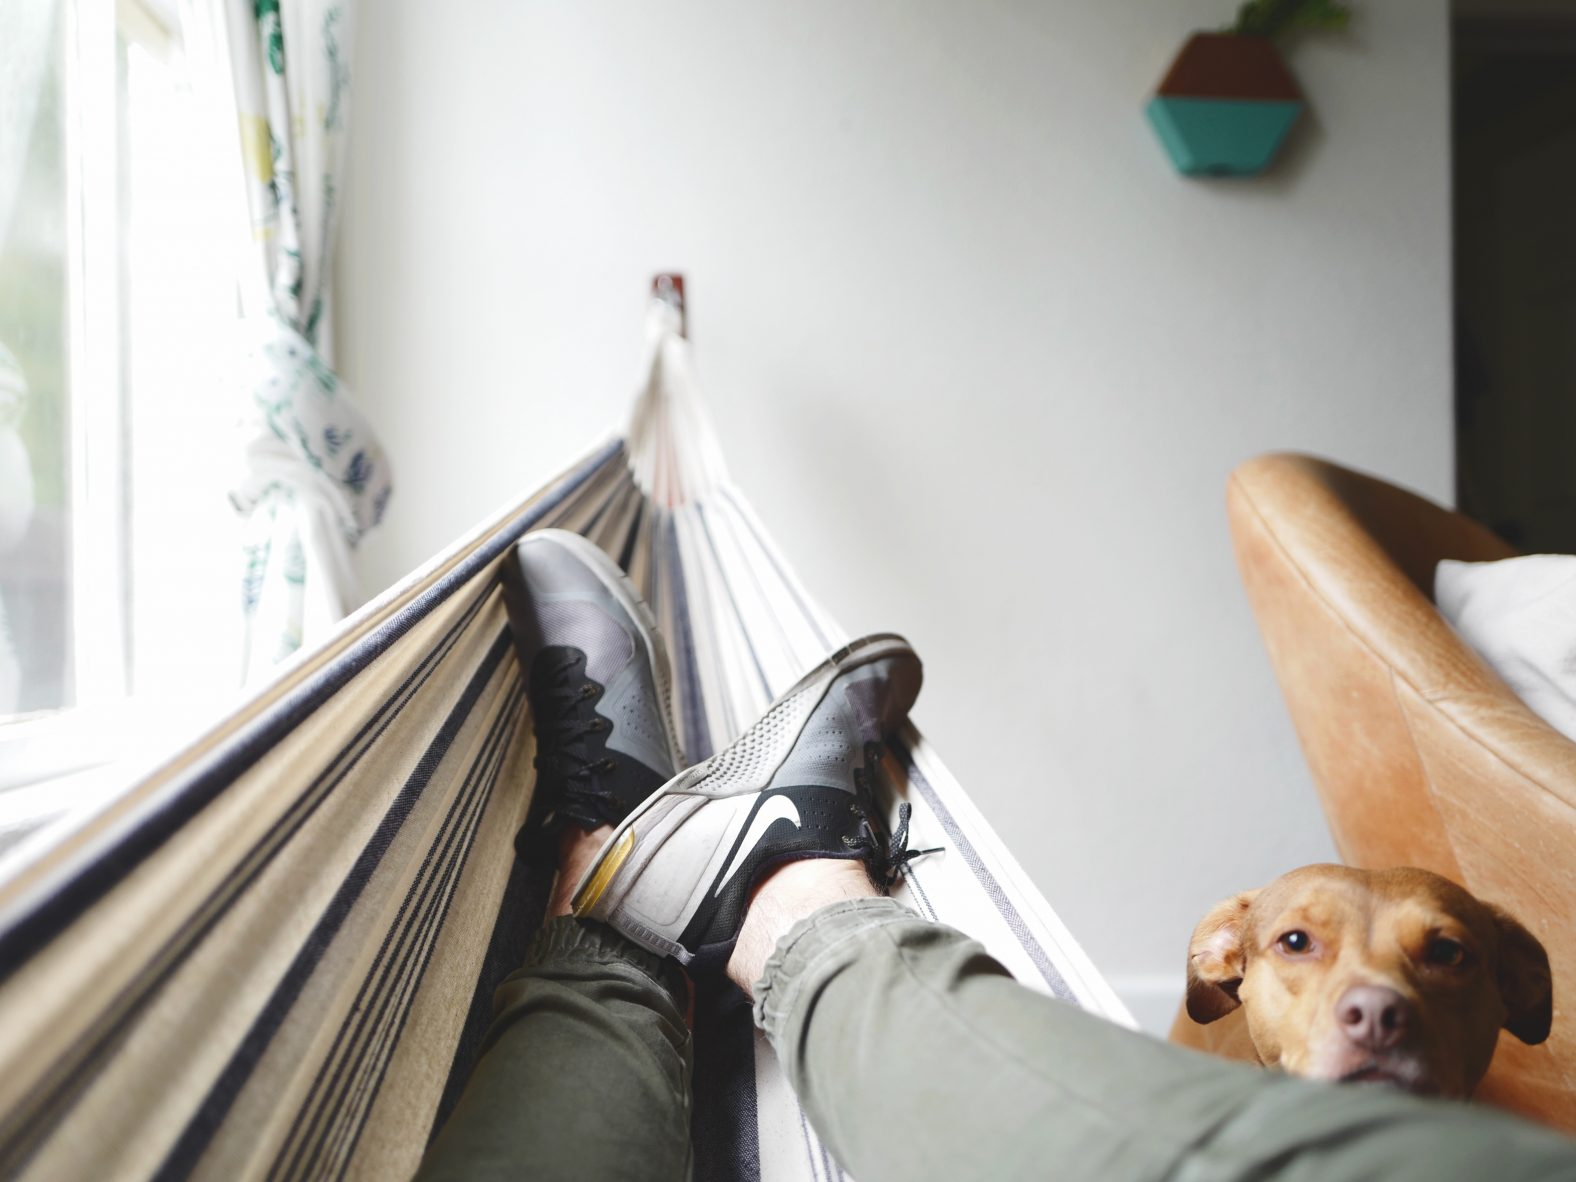 The Cancer Voice Asia   Share your lazy days now without feeling any guilt. The time you enjoy wasting, is time not wasted. Photo by Drew Coffman on Unsplash.